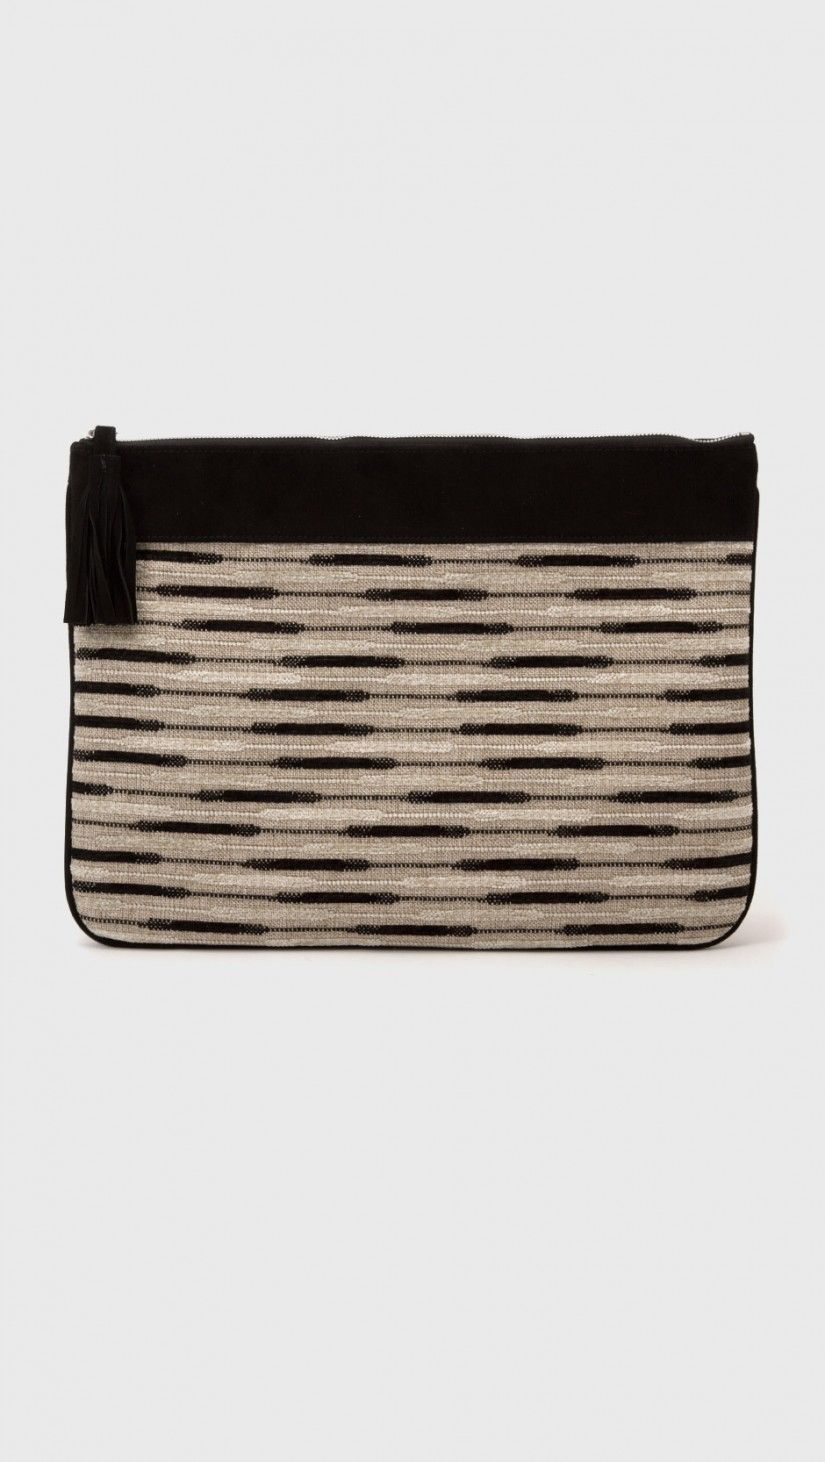 NewbarK Large Pouch with Tassel in Natural Woven and Black Suede | The Dreslyn